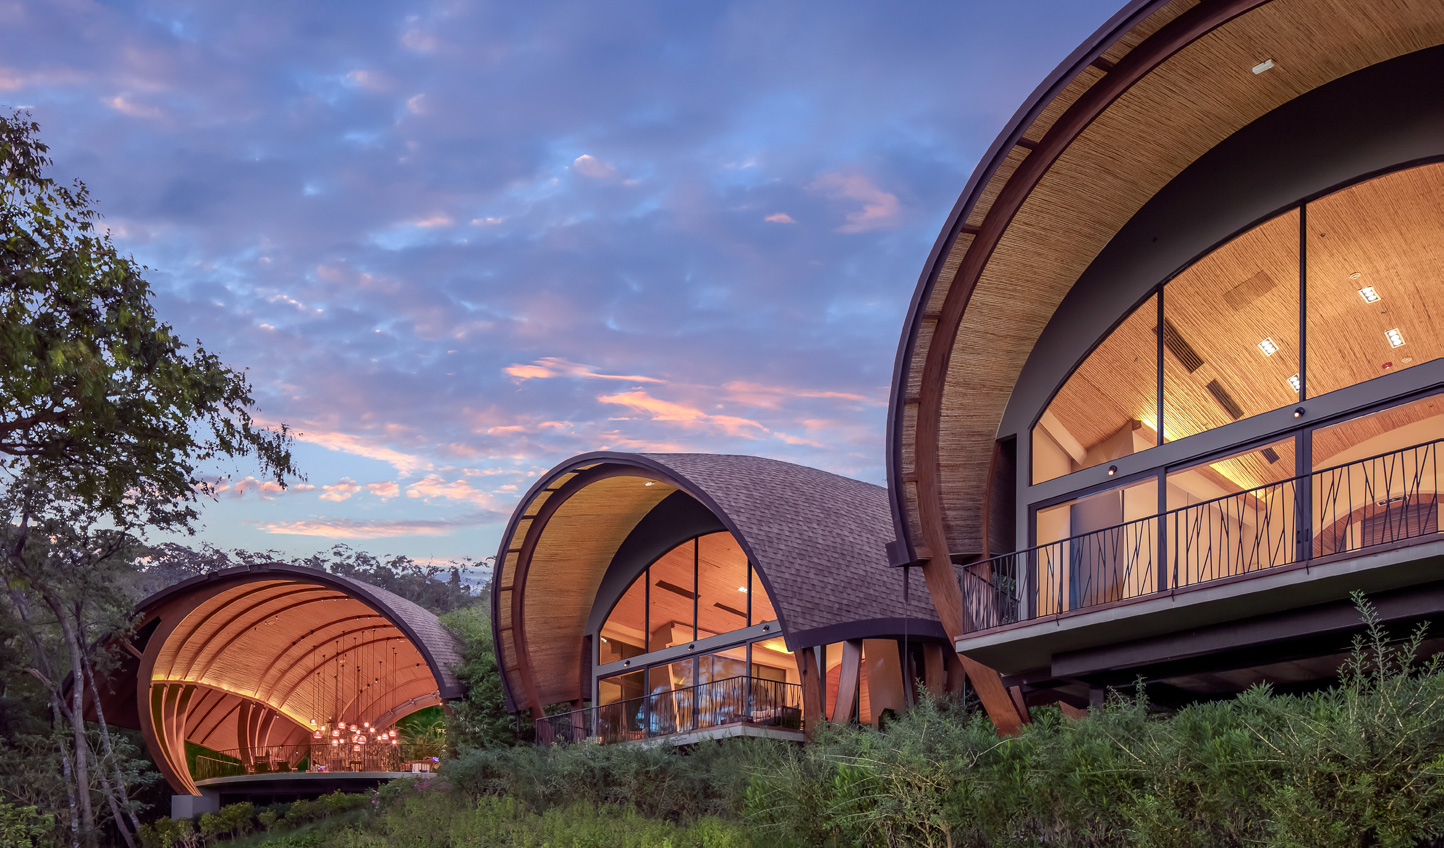 Modern and architecturally innovative